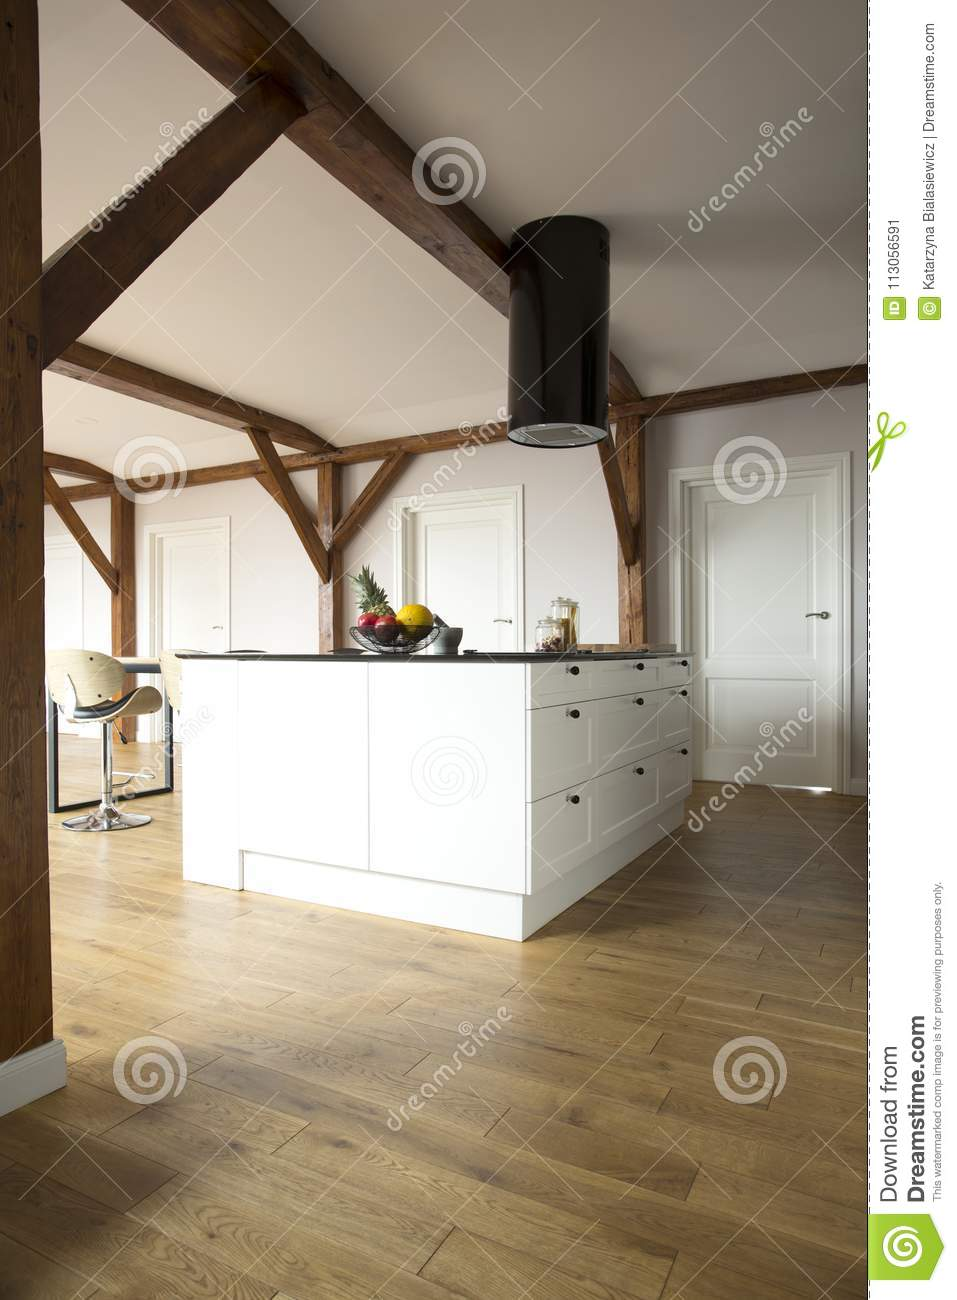 Spacious open space with kitchen